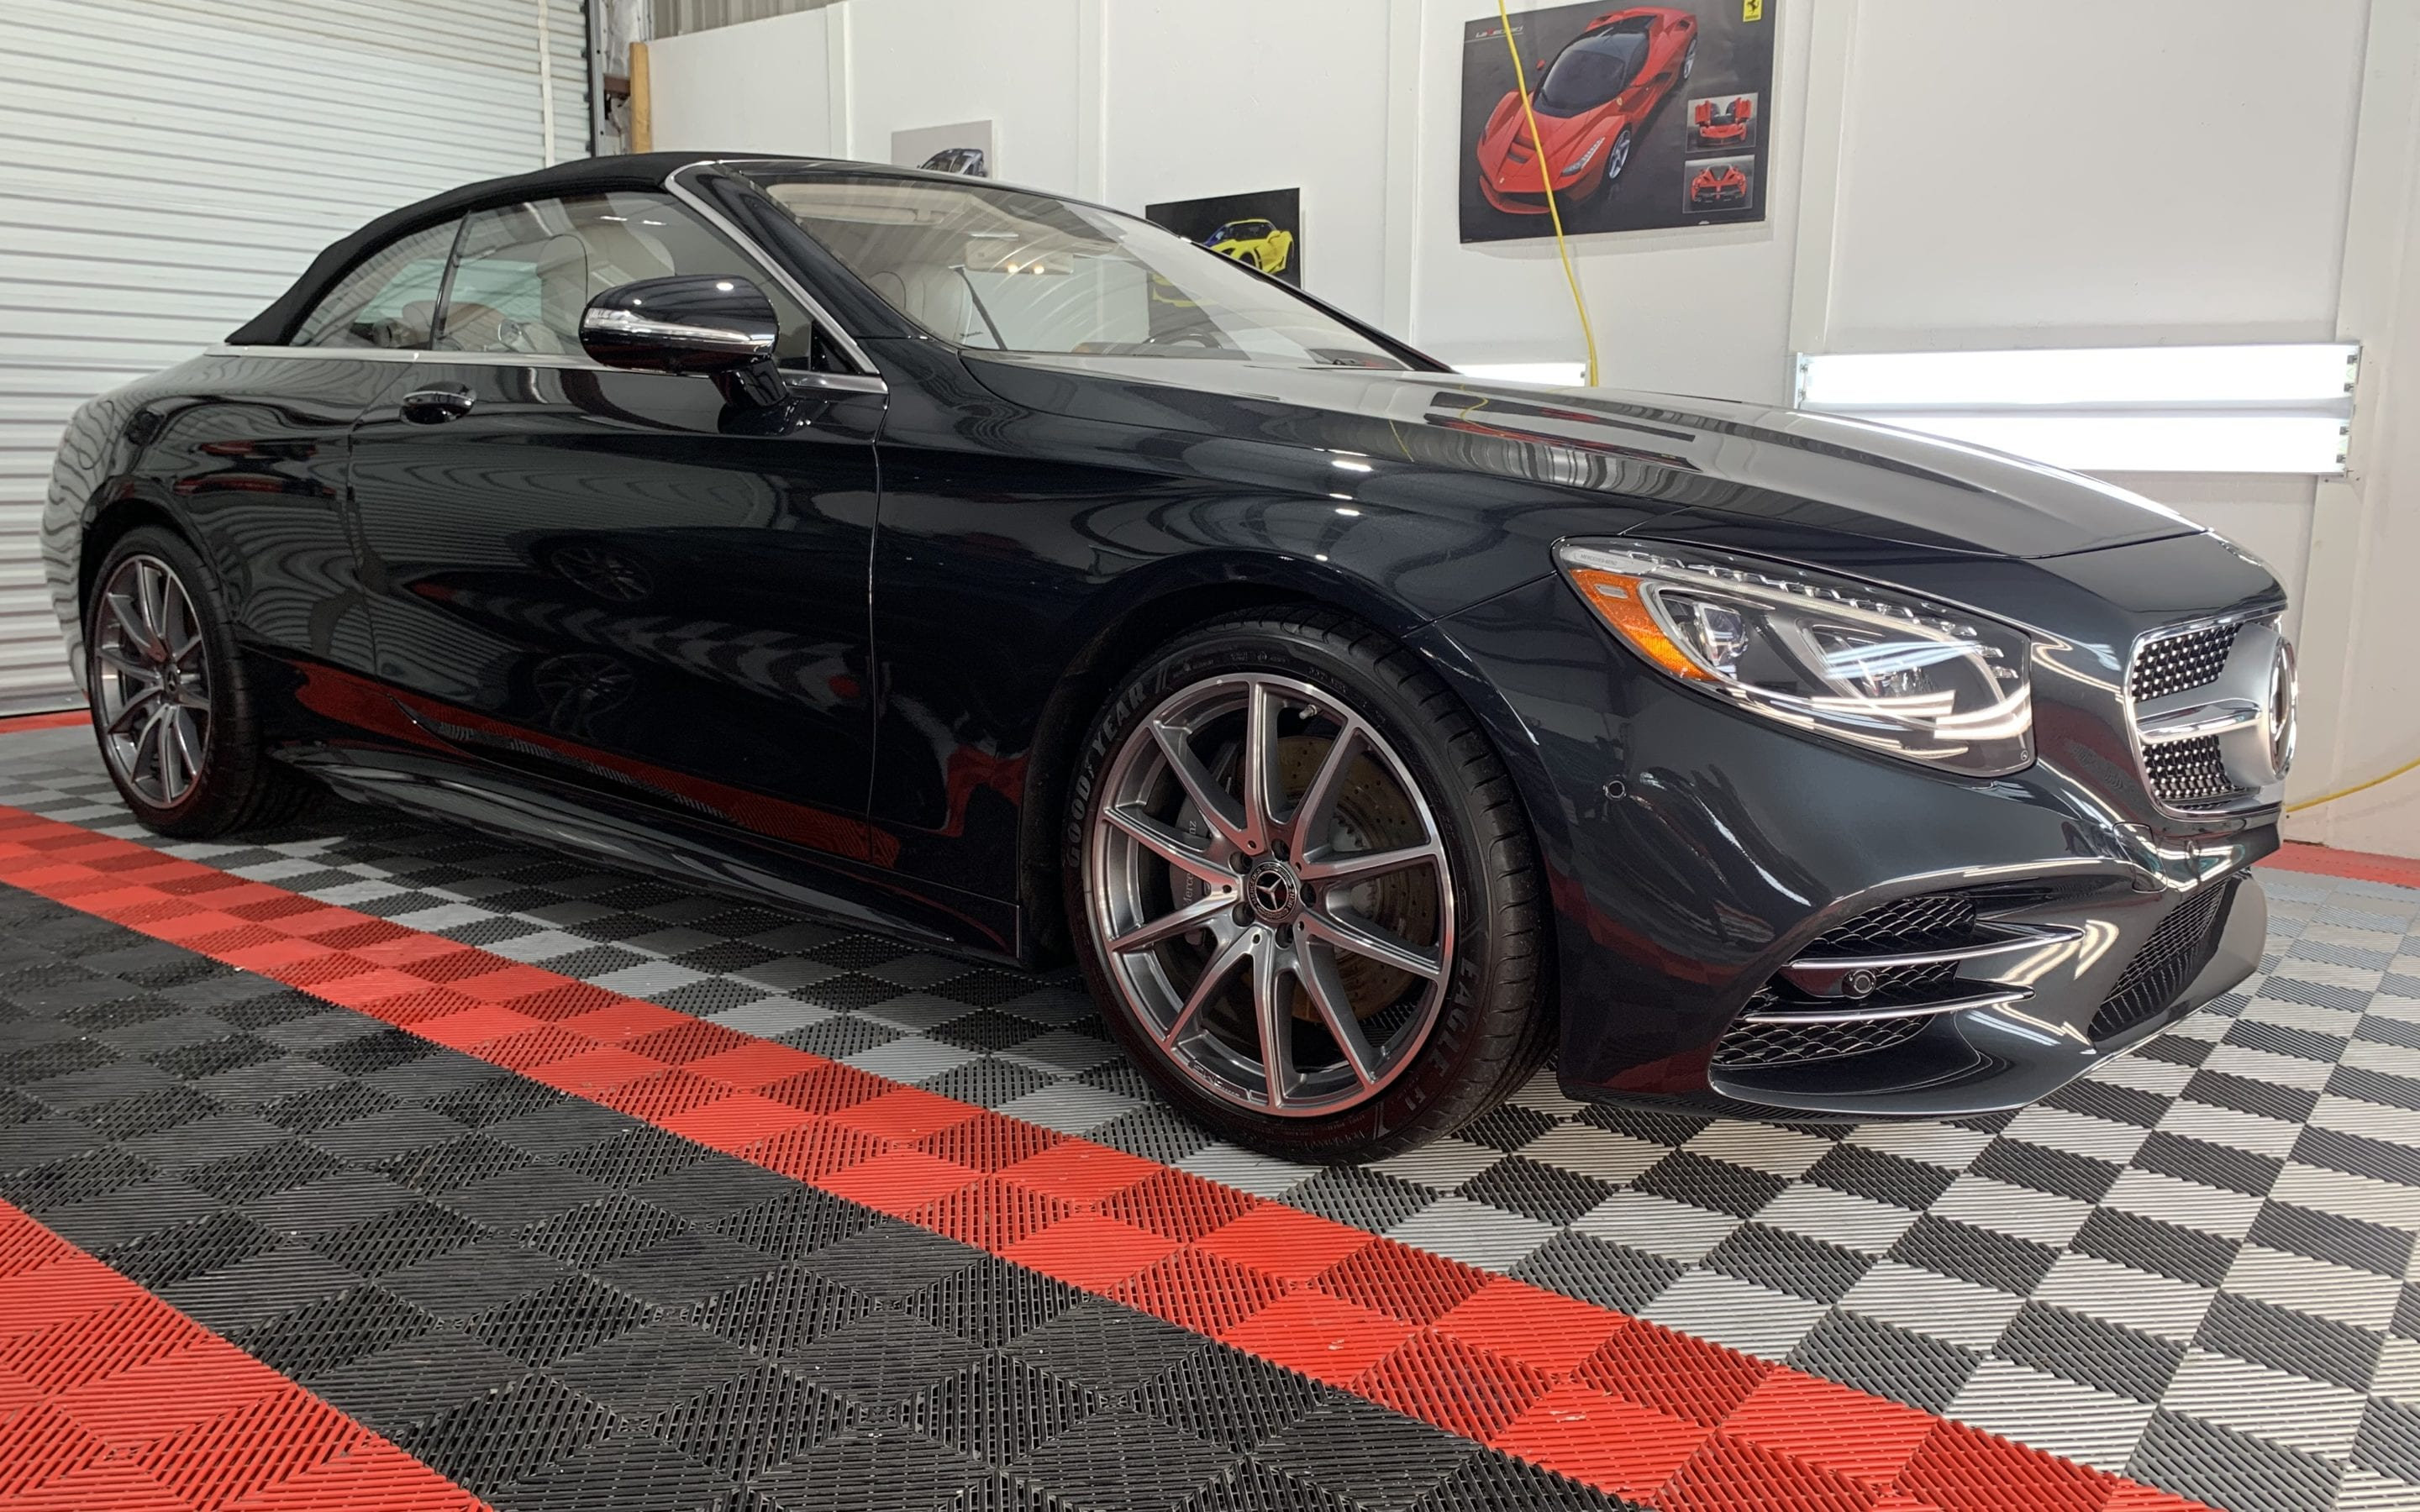 Photos of a new Car Preparation of a 2020 Mercedes S560